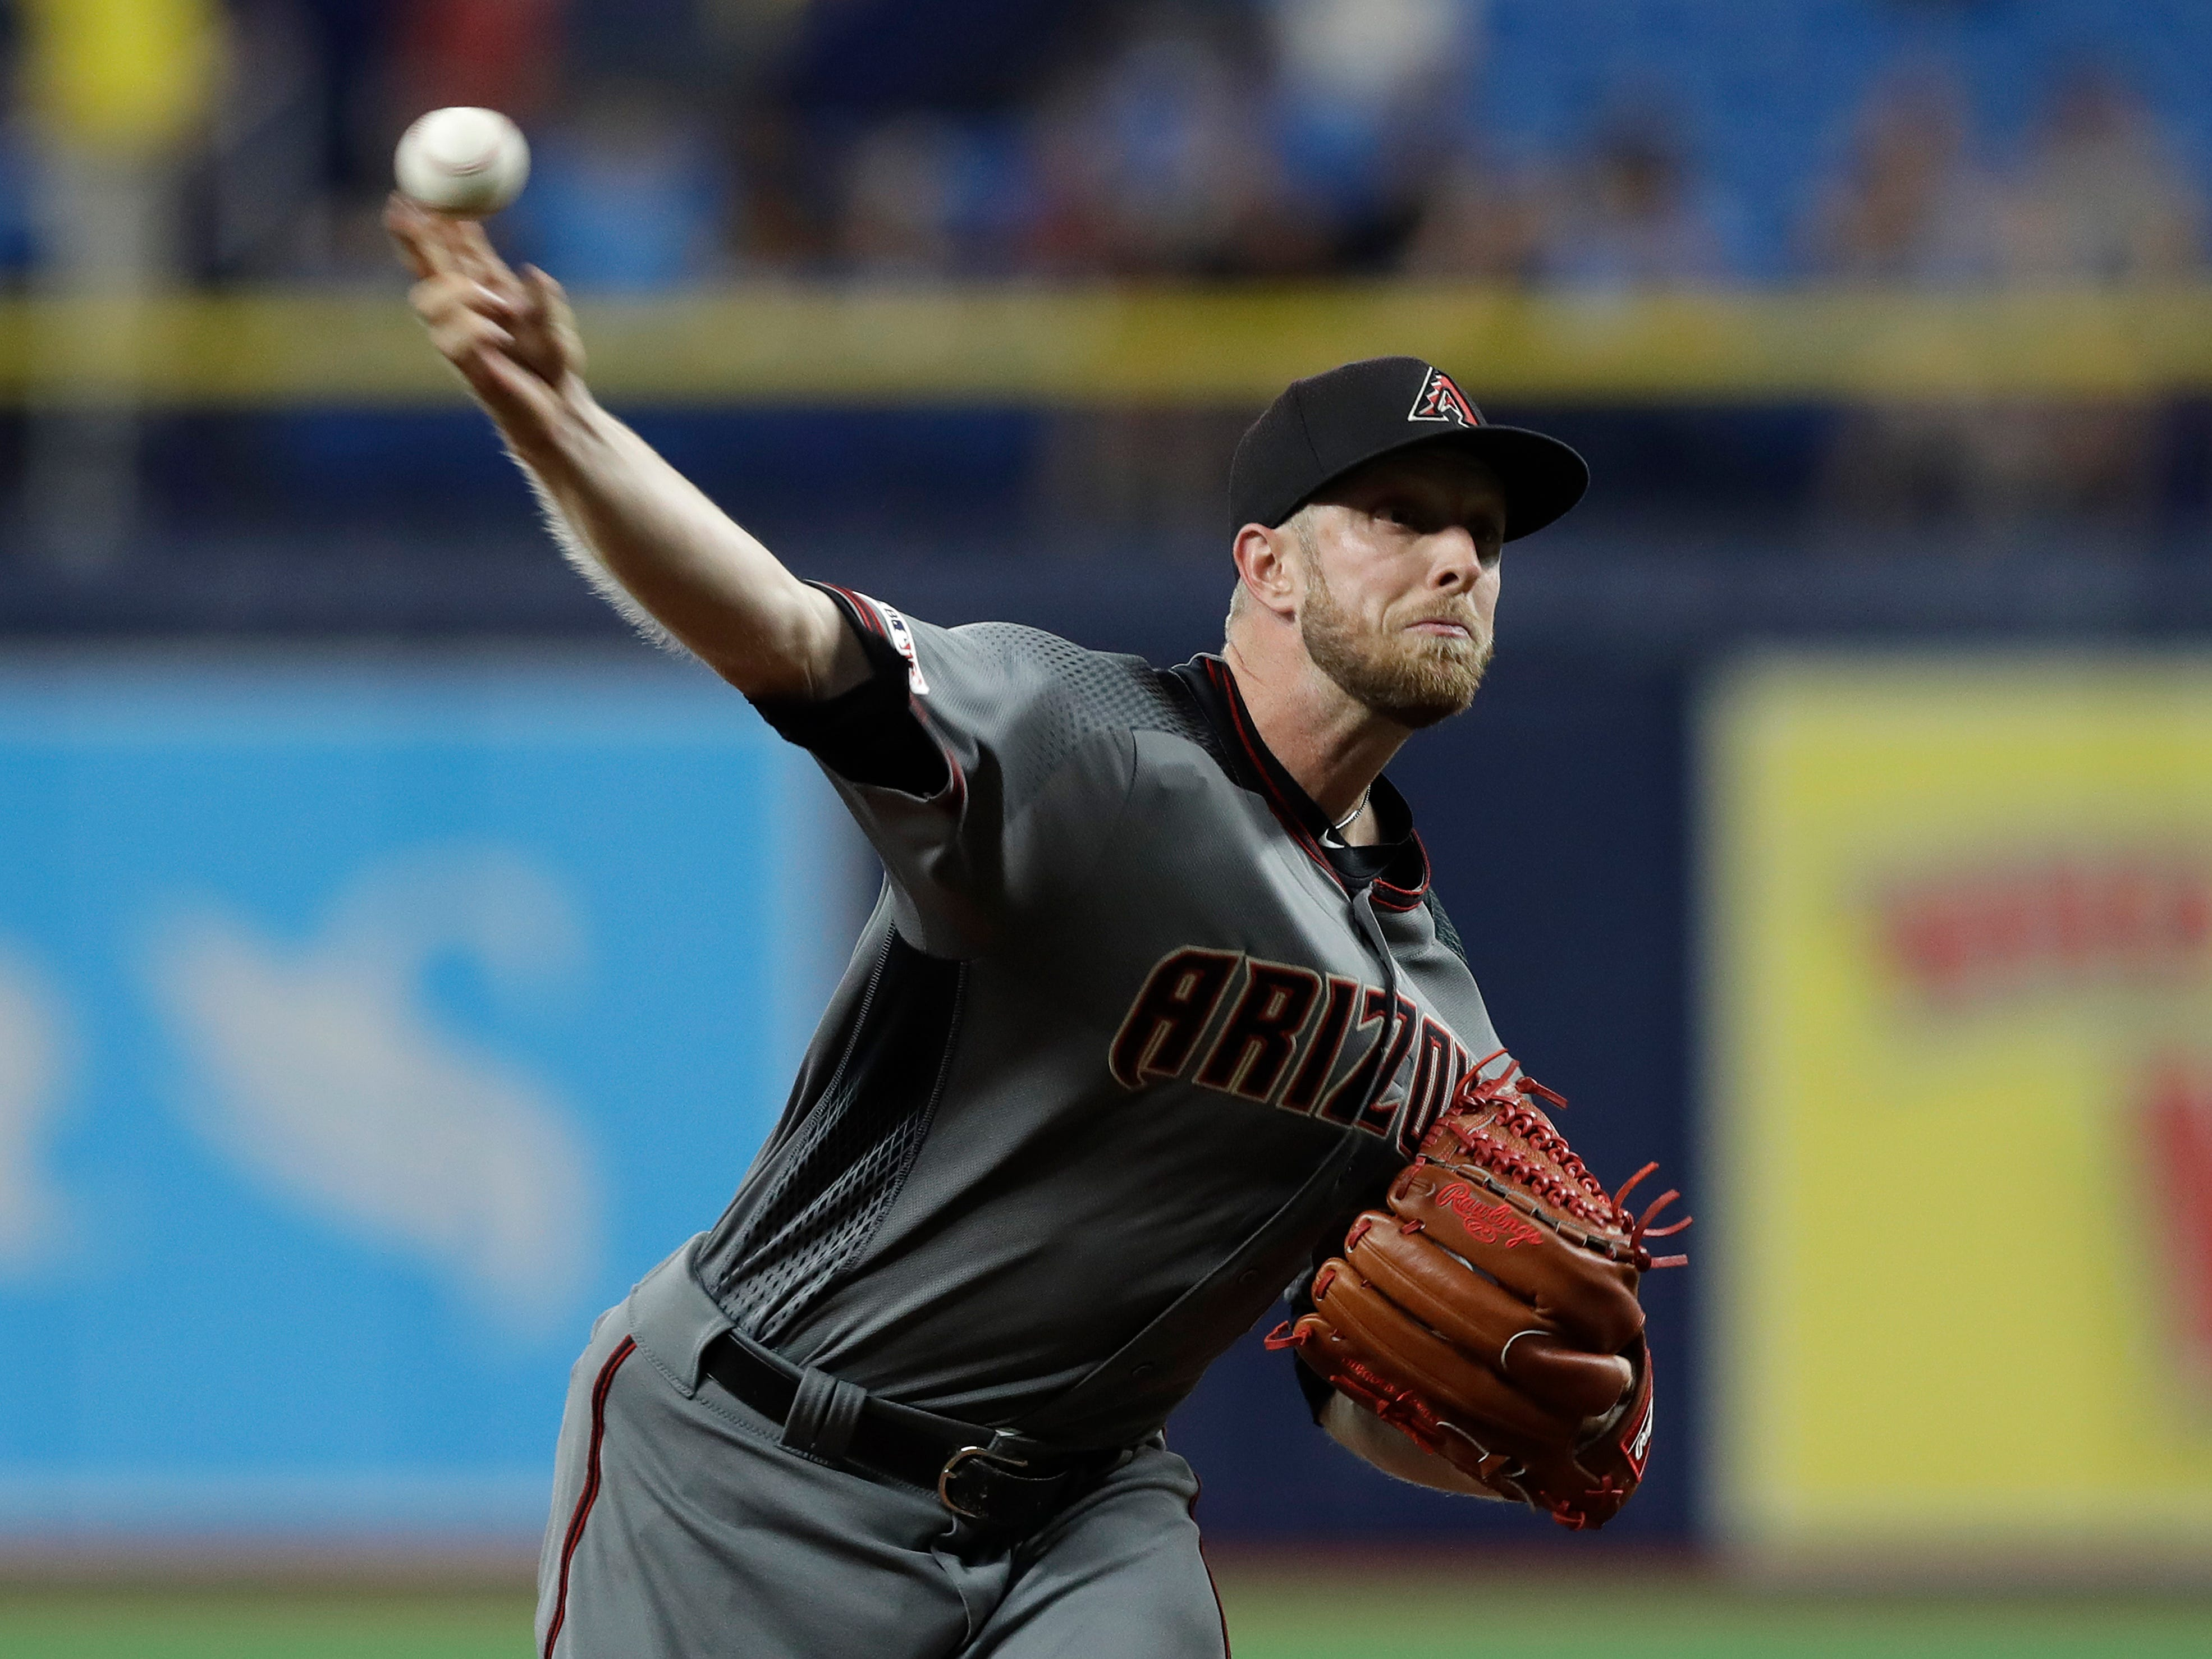 Arizona Diamondbacks starting pitcher Merrill Kelly delivers to the Tampa Bay Rays during the first inning of a baseball game Monday, May 6, 2019, in St. Petersburg, Fla. (AP Photo/Chris O'Meara)